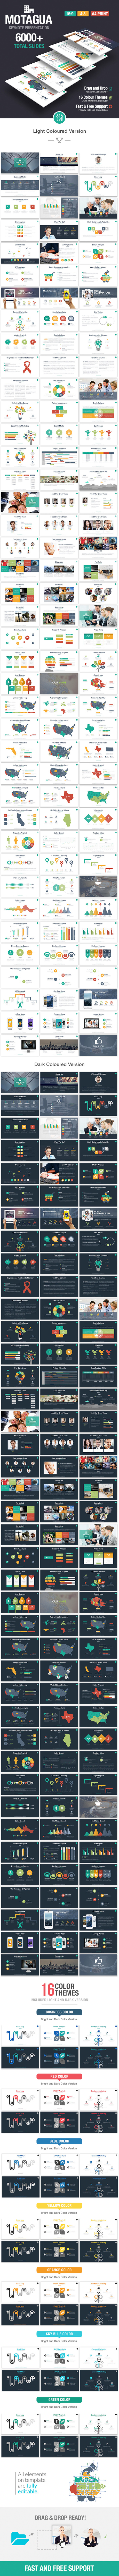 GraphicRiver Motagua Multipurpose Keynote Template 10496379